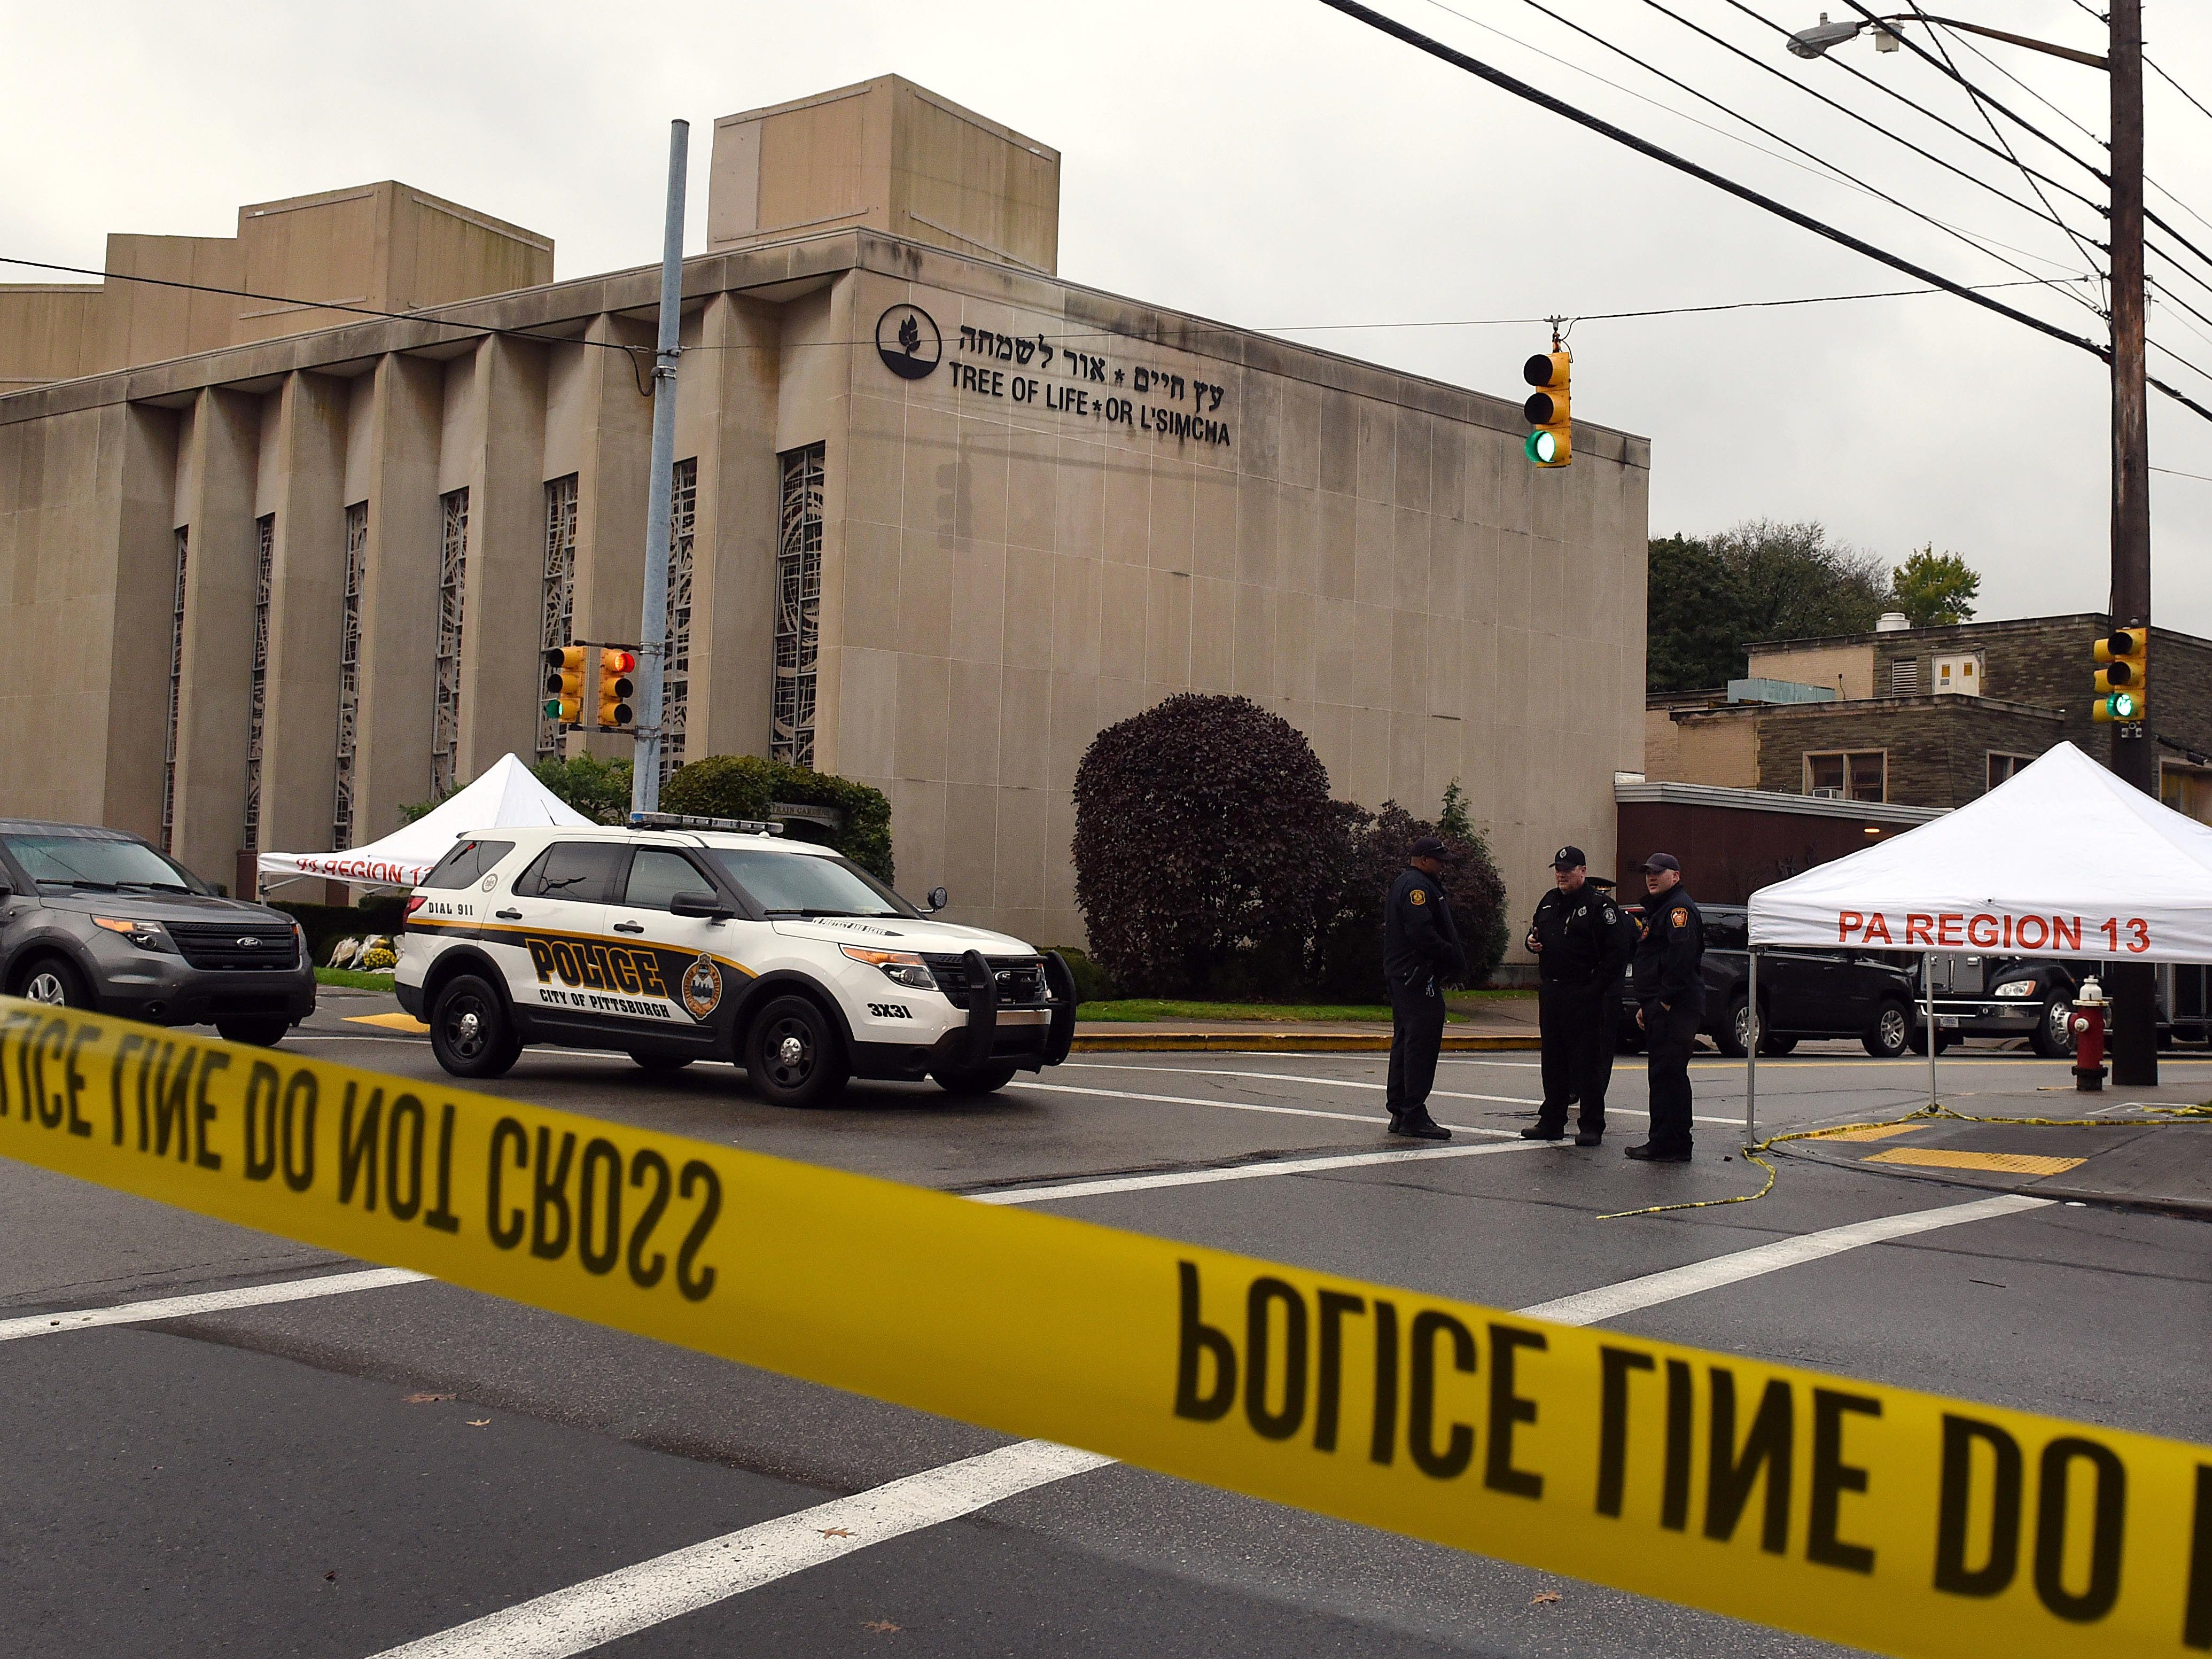 Police tape surrounds the Tree of Life Congregation synagogue in the Squirrel Hill neighborhood of Pittsburgh on Oct. 28, 2018.